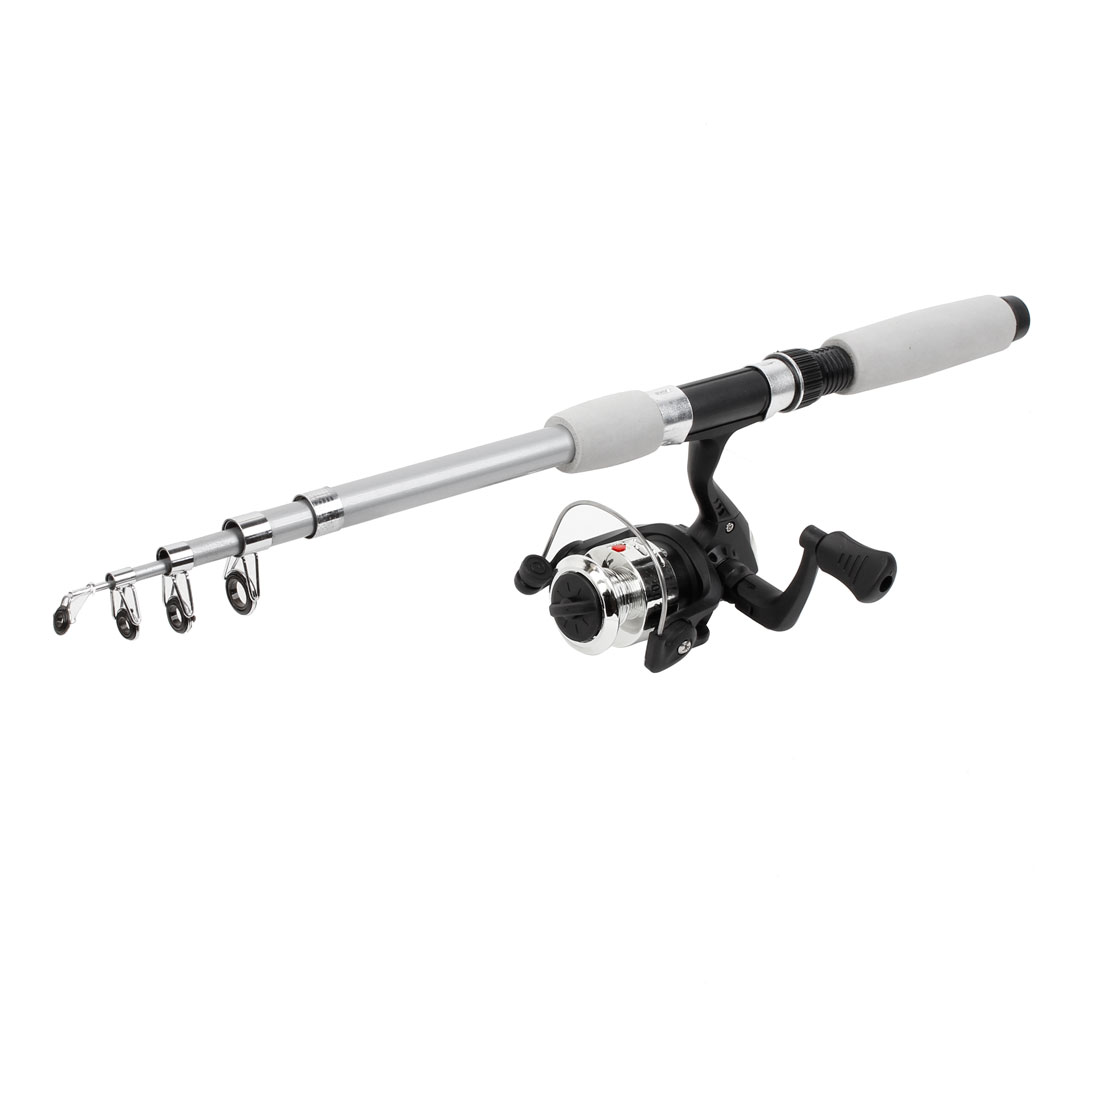 1.8M 4 Sections Telescopic Fishing Pole Rod + Gear Ratio 5.2:1 Spinning Reel